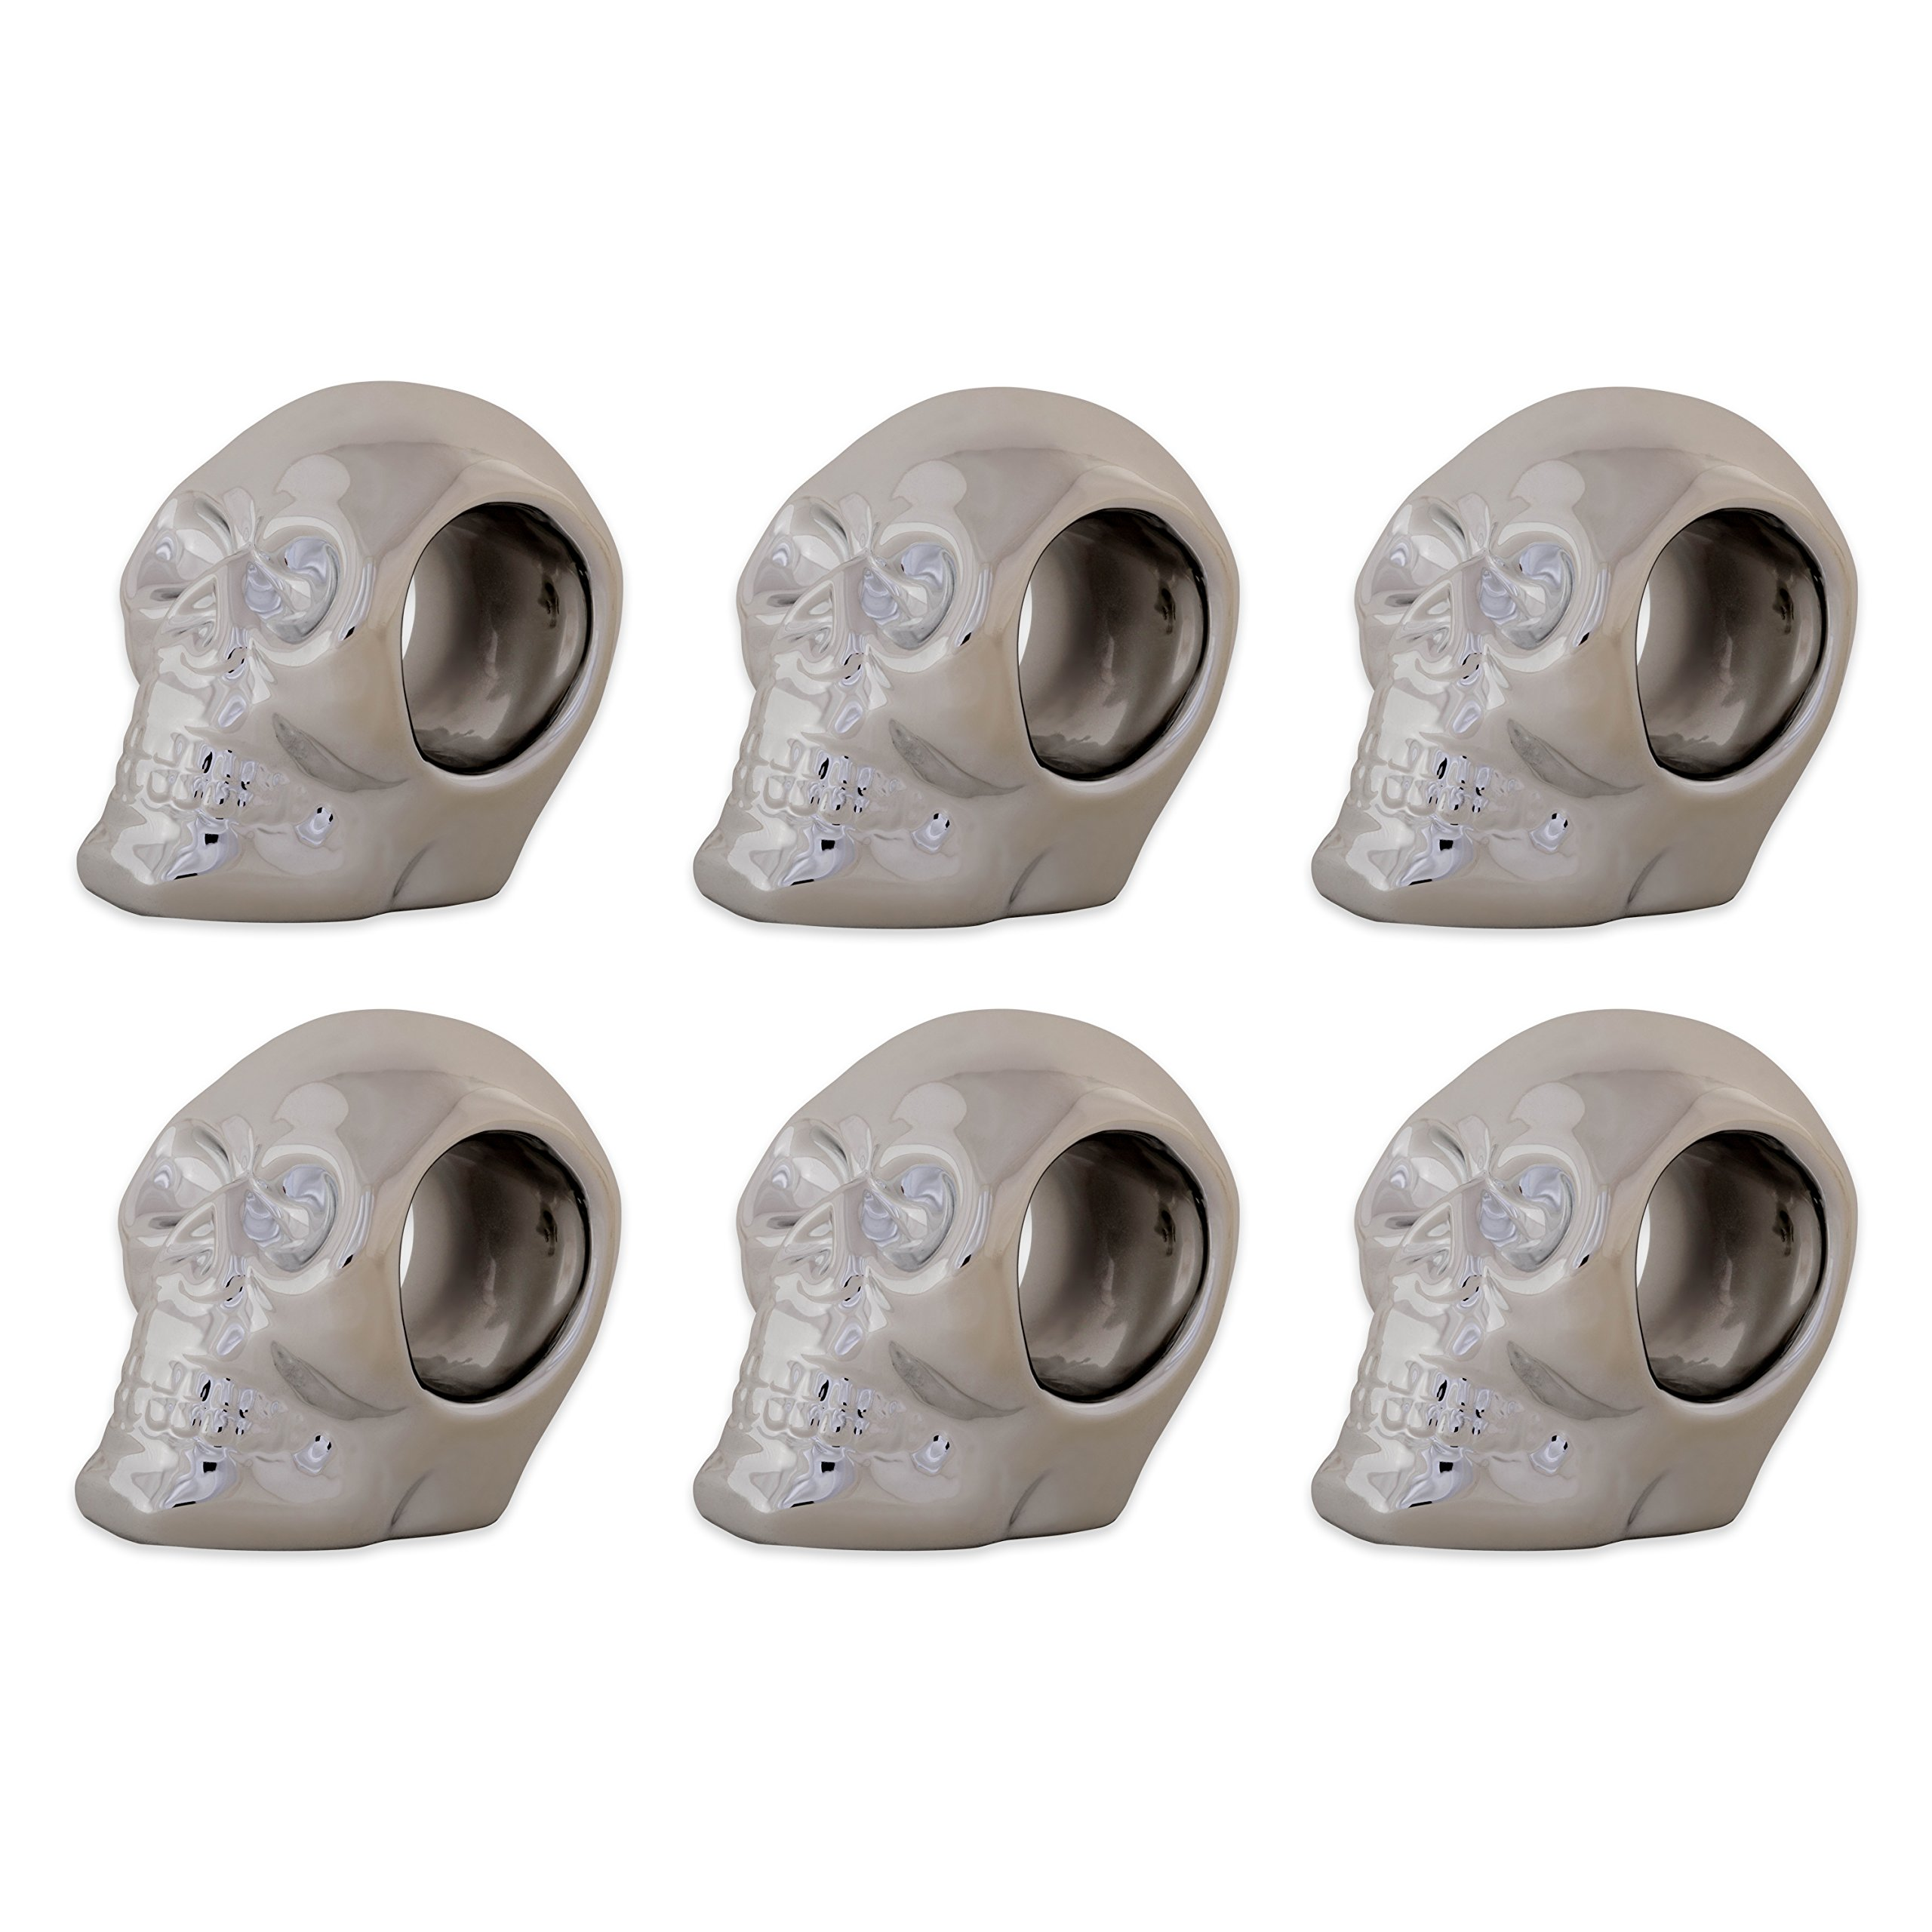 DII CAMZ10887 Thanksgiving or Fall Napkin Rings, Set of 6, Halloween Silver Skull, 6 Pack